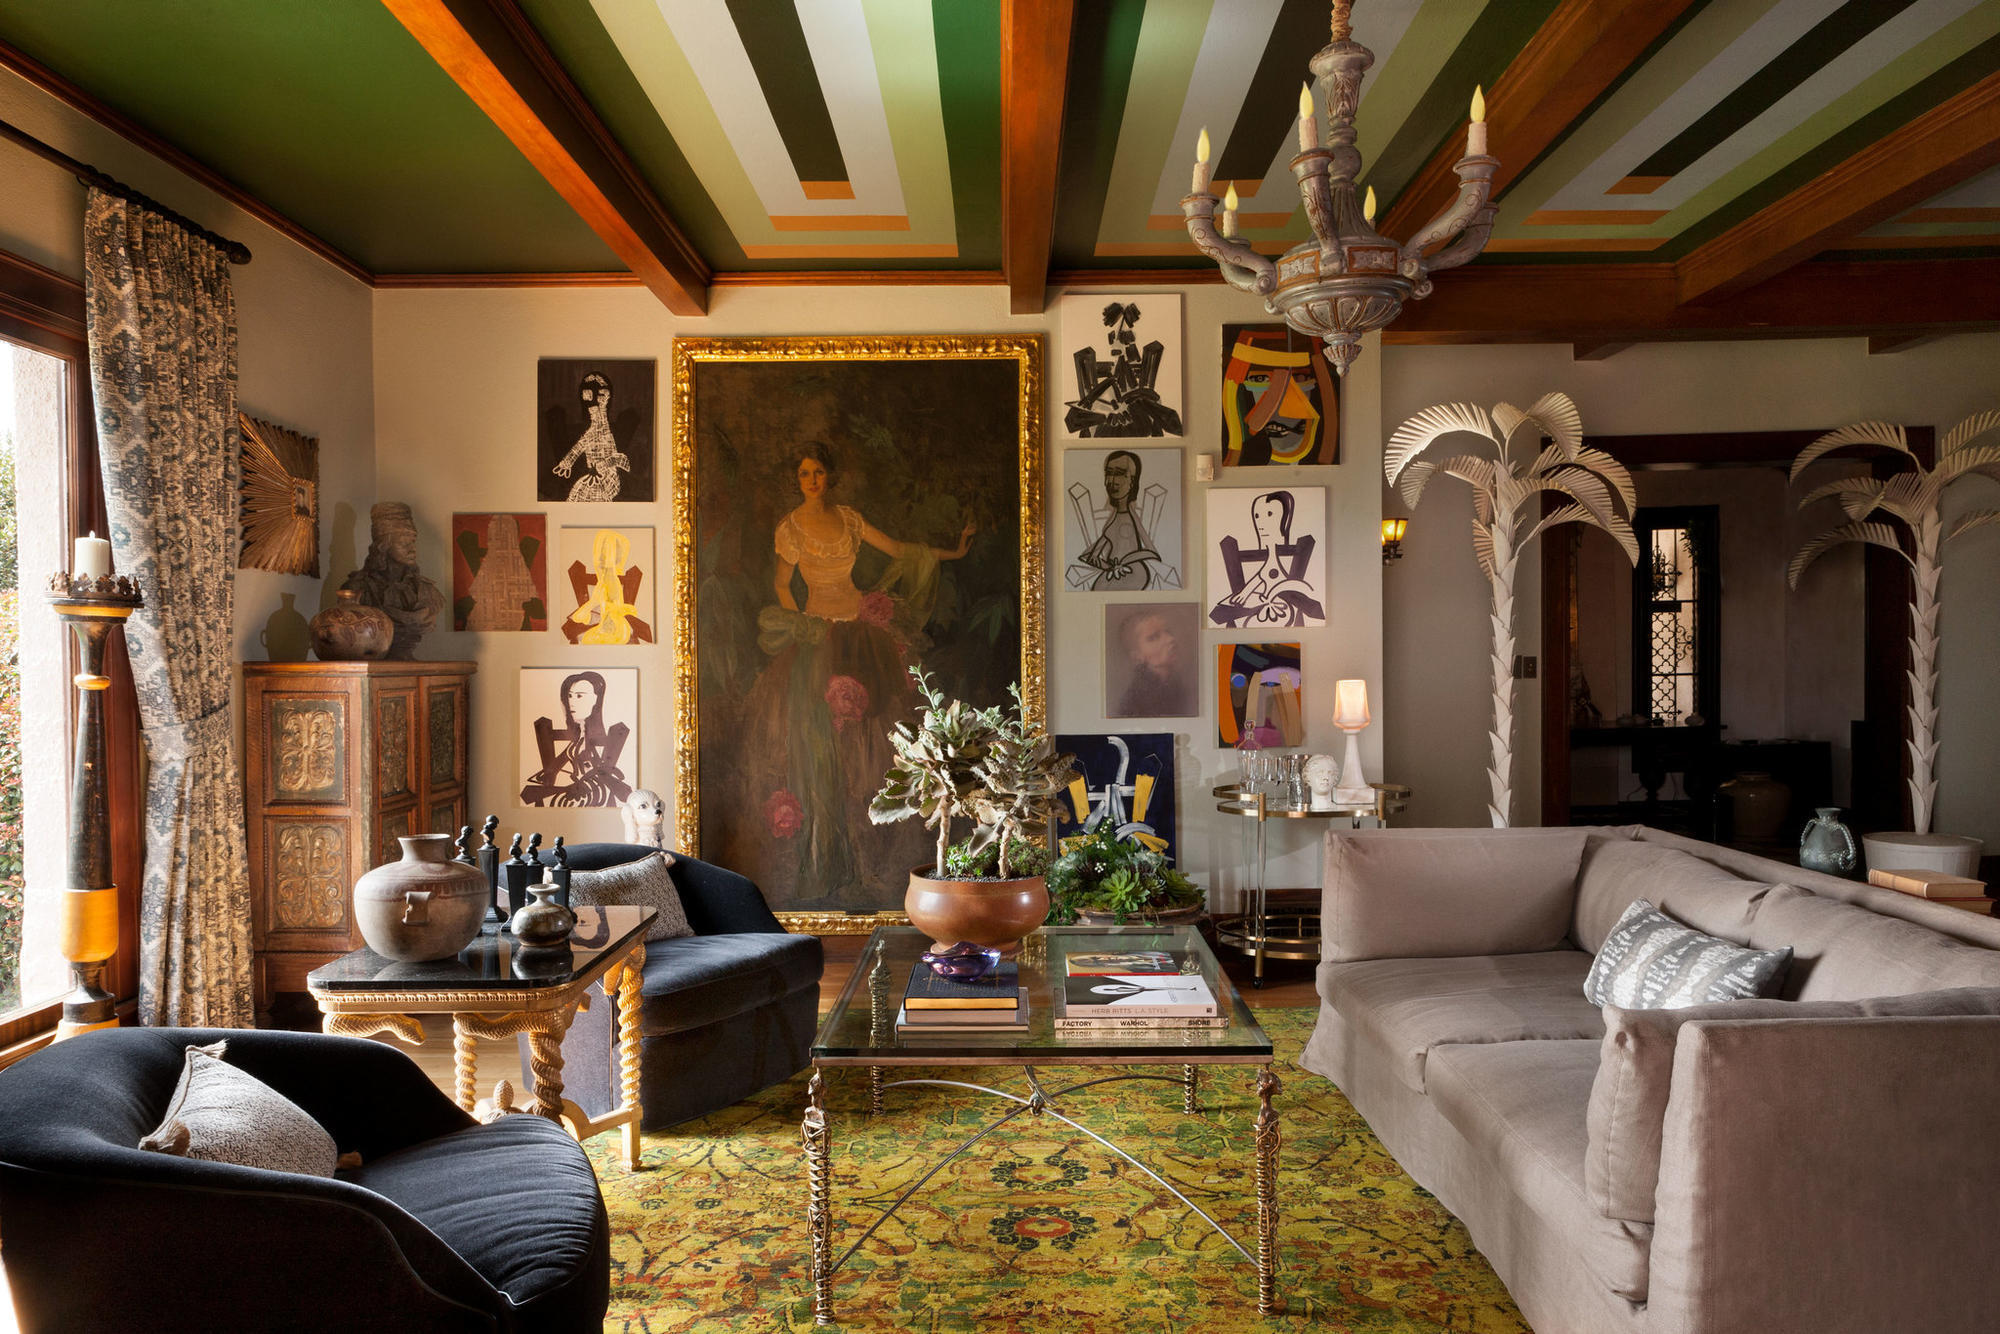 See how L.A. interior designers transformed this classic Hollywood mansion  - LA Times